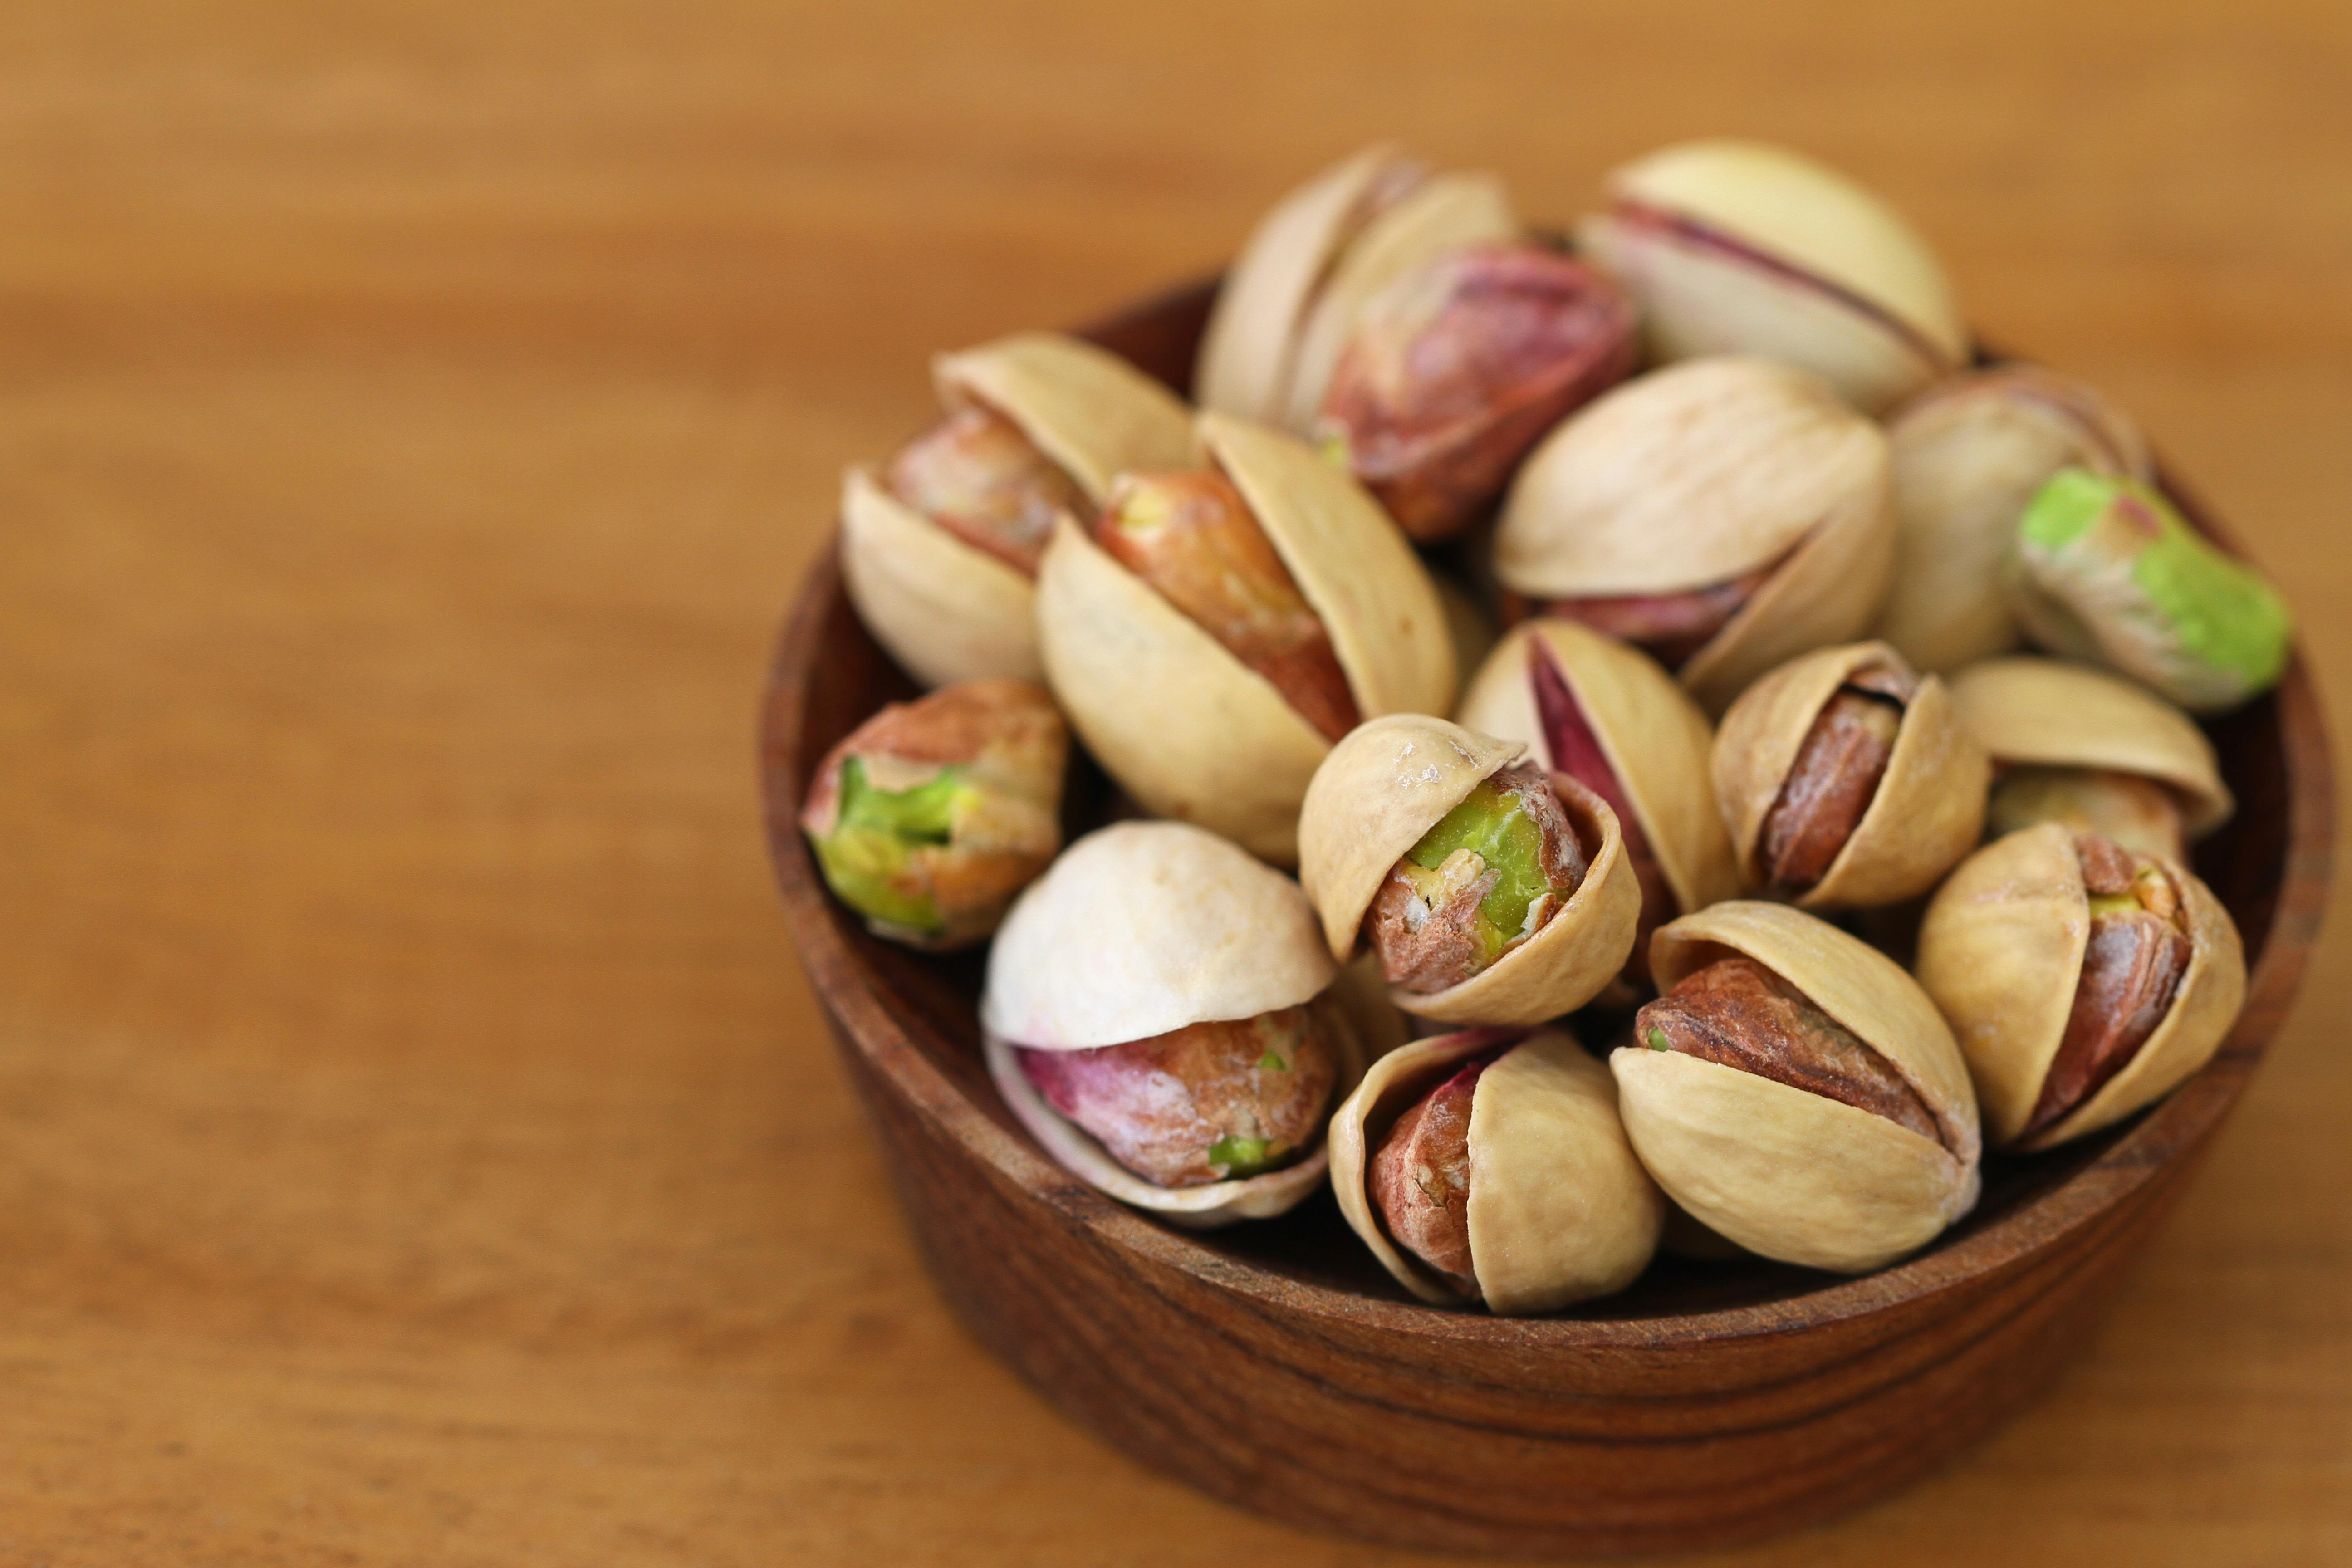 Regularly Eating Pistachios Might Help Reduce Blood Sugar Levels, Diabetes Risk